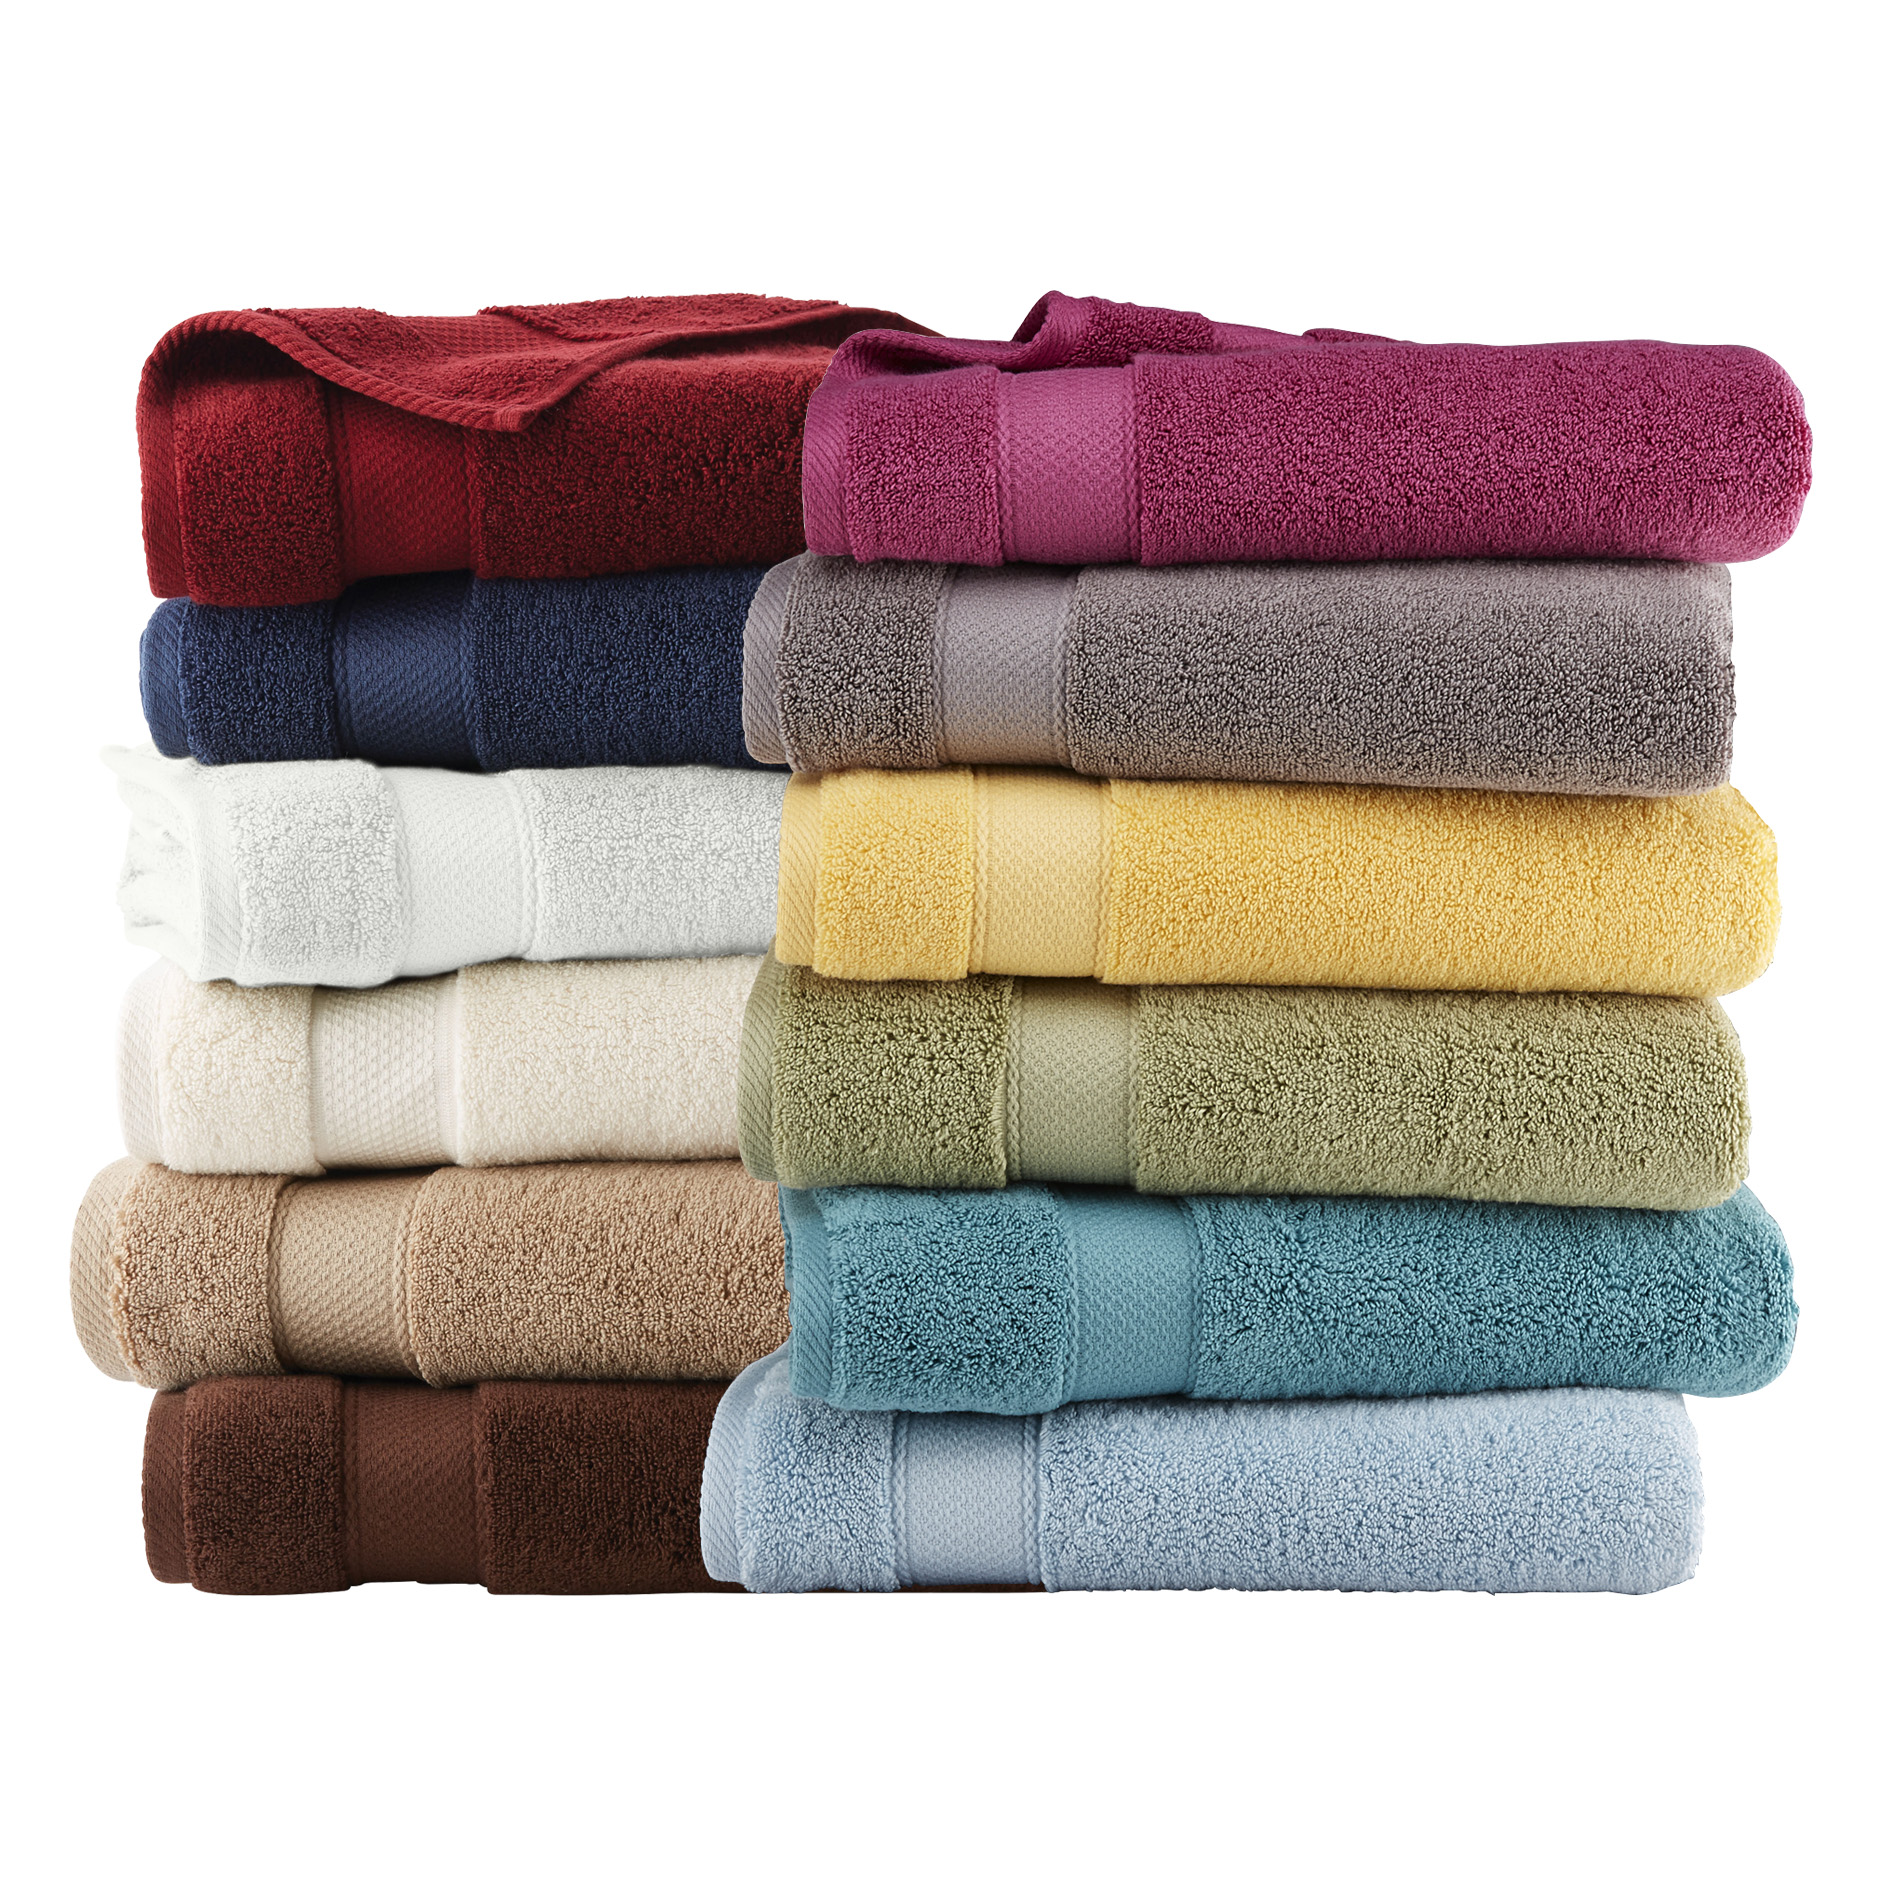 Cannon Egyptian Cotton Bath Towels Sheets Hand Washcloths